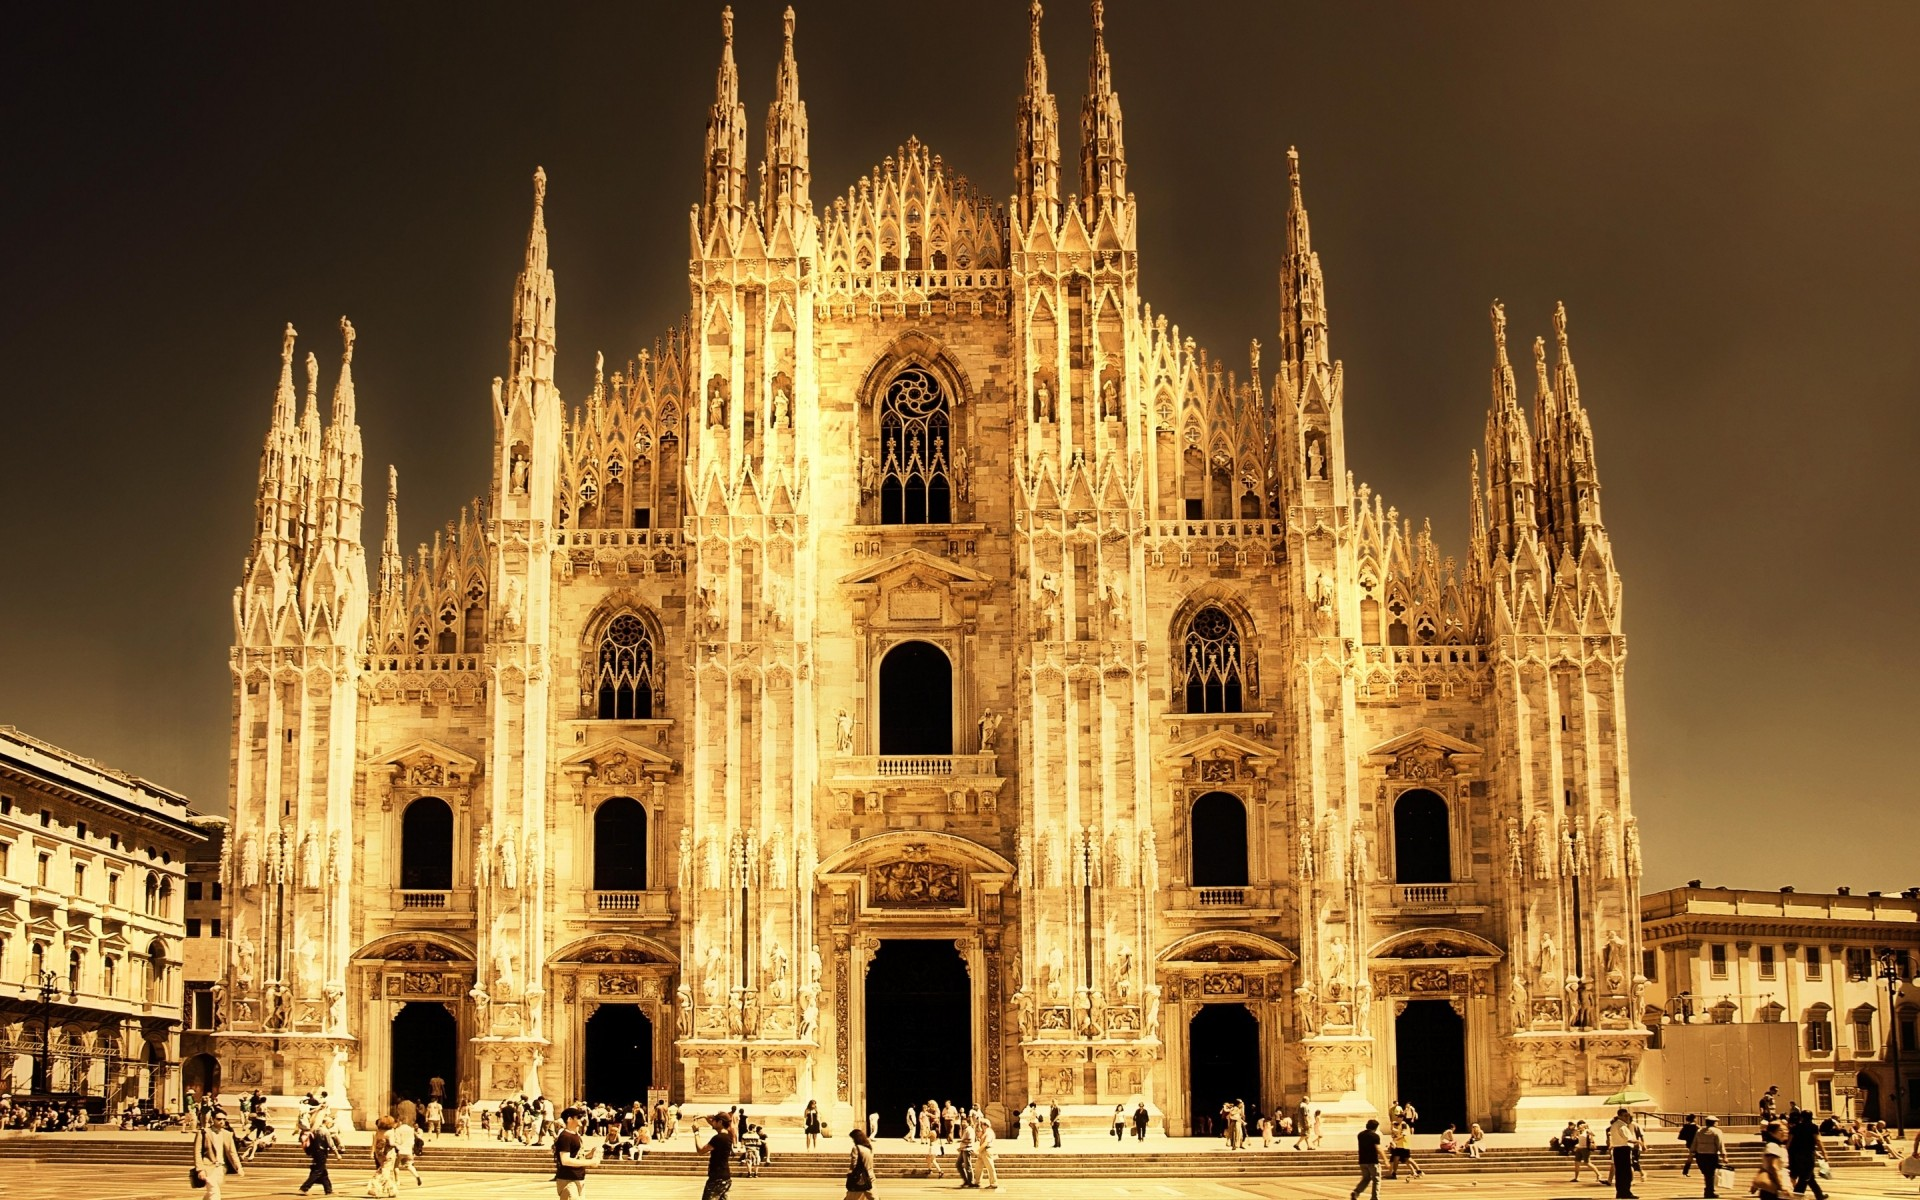 italy architecture travel cathedral church building city outdoors religion sky gothic tower ancient tourism old monument landmark milan milan cathedral